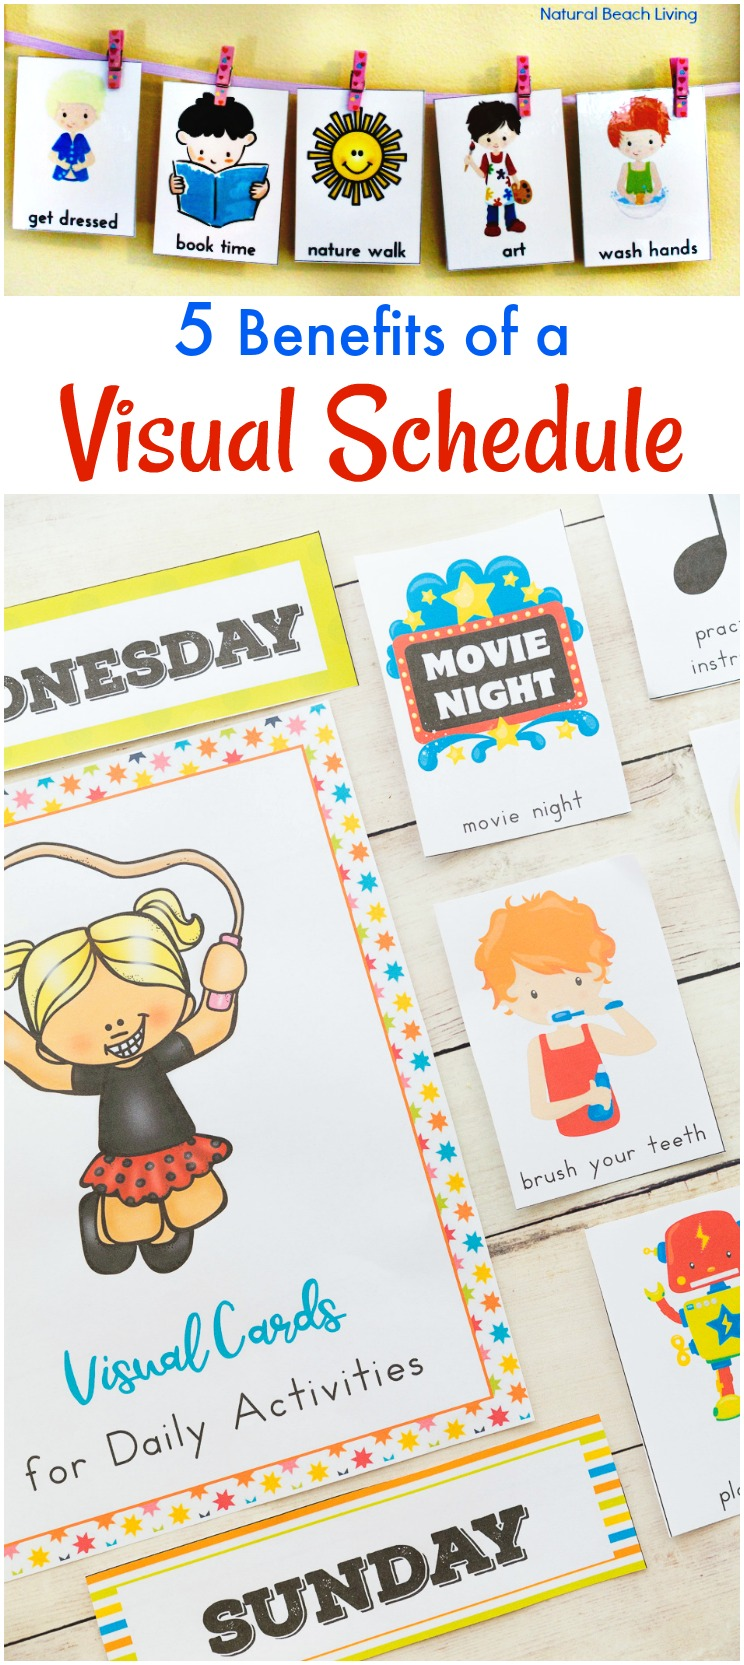 photograph about Children's Routine Charts Free Printable identify 5 Gains of Visible Schedules for Small children - Greatest